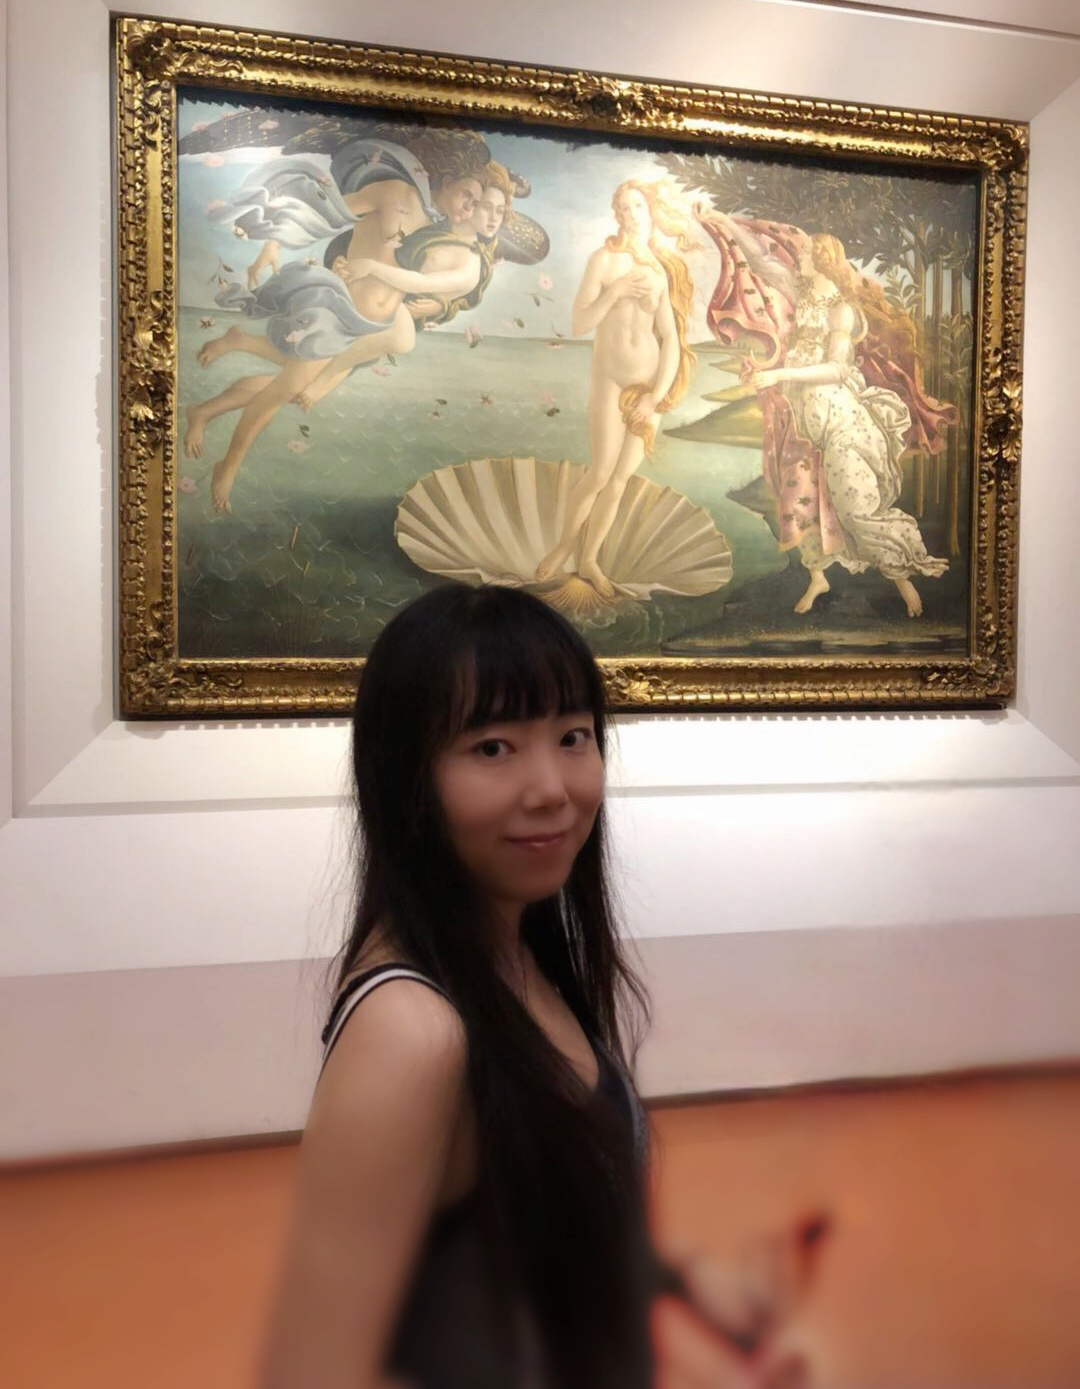 a woman is smiling in front of a painting